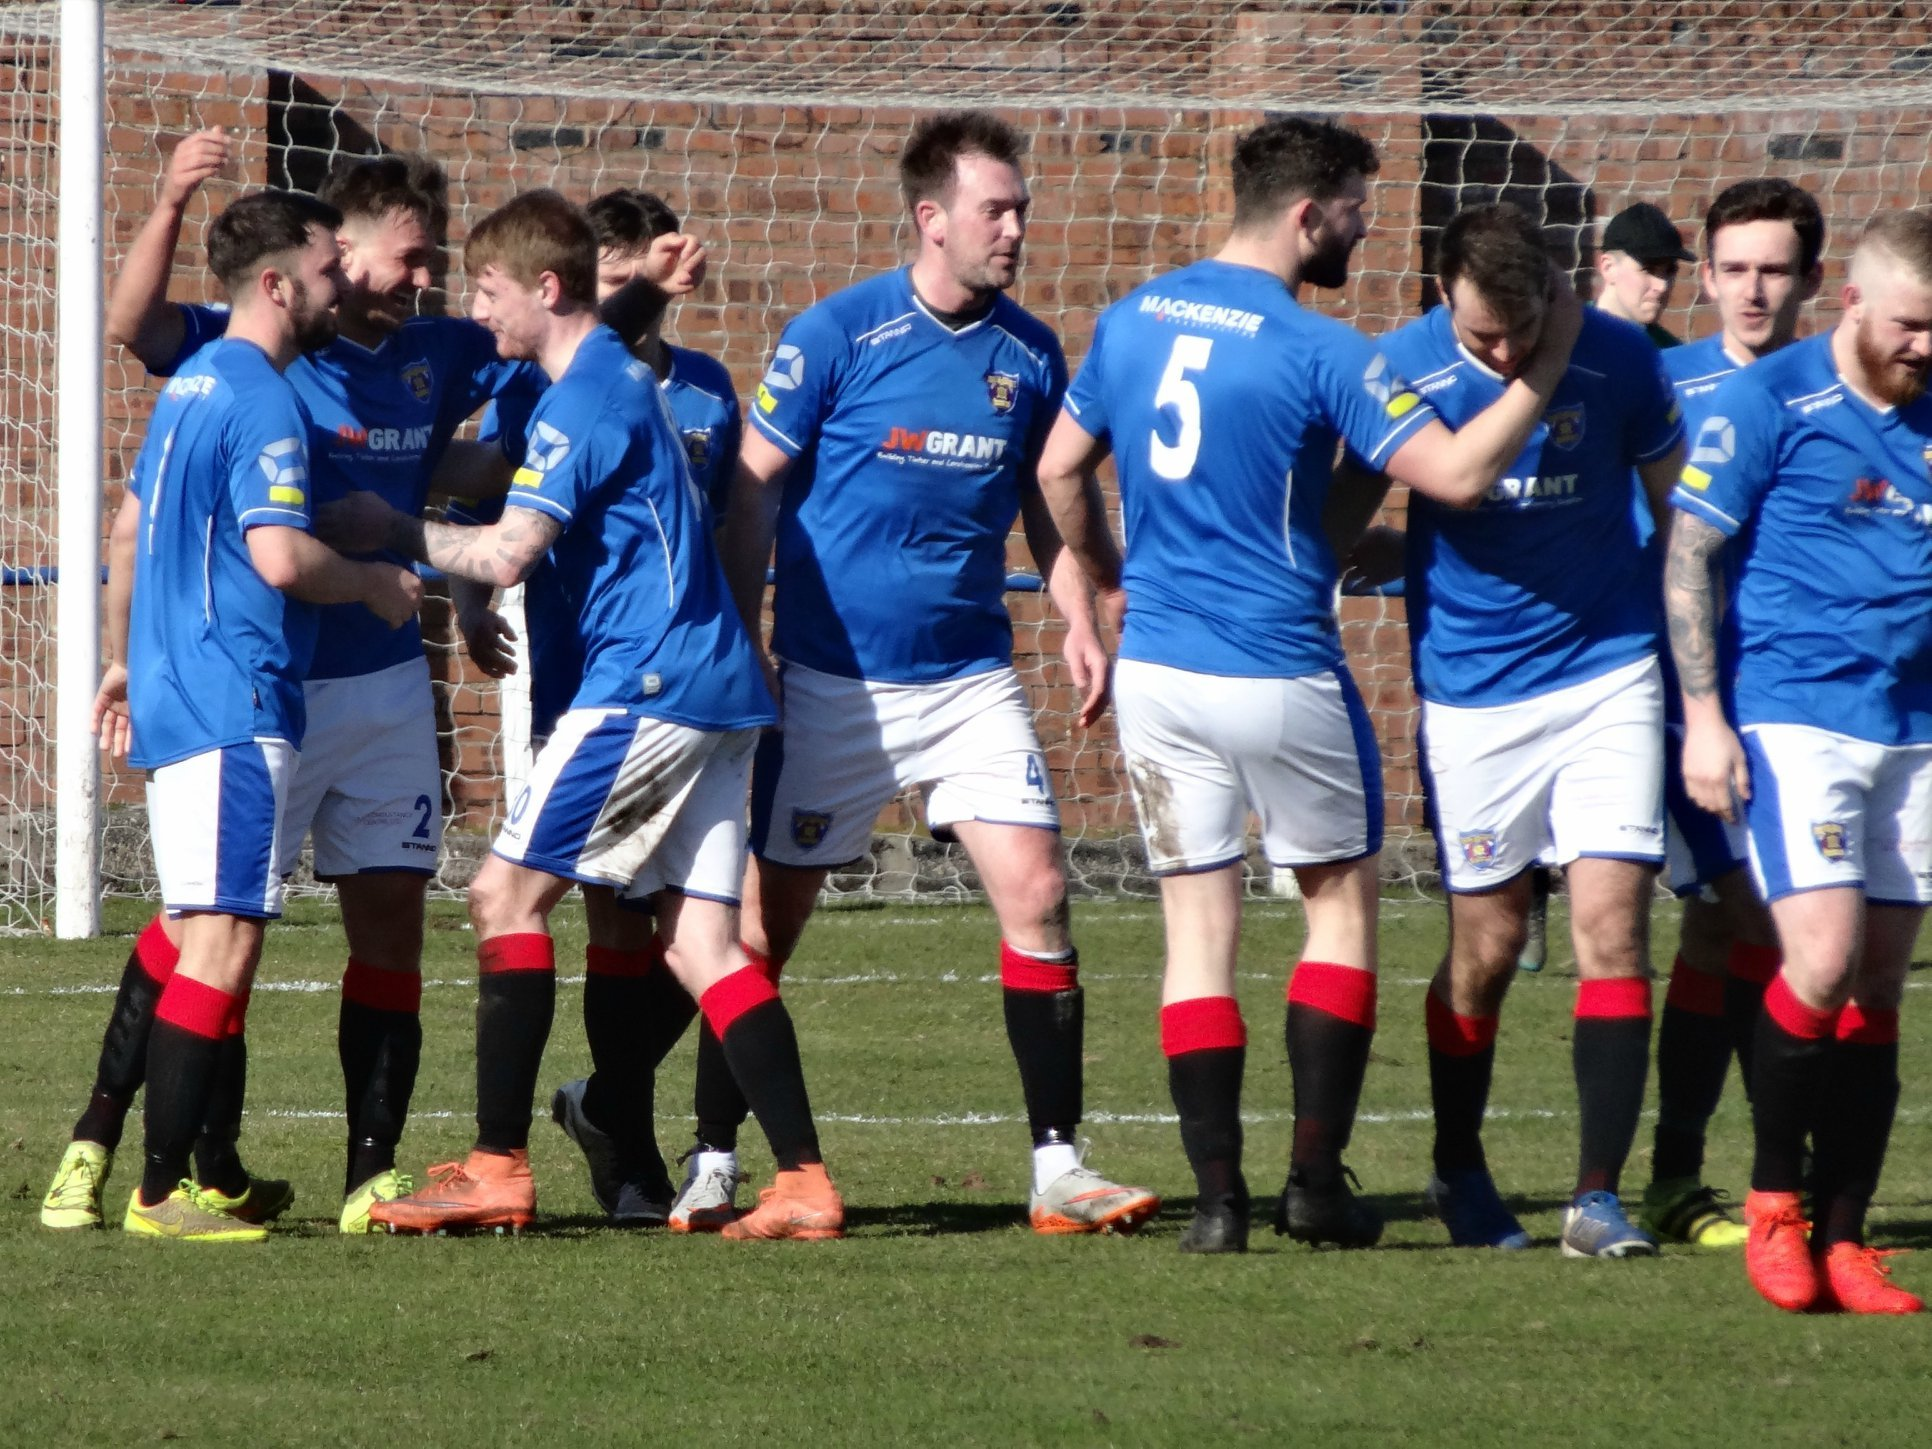 BIG VICTORY: Meadow players celebhate a goal in the 2-0 home win against Cambuslang Rangers. Picture: Gordon McCreath.